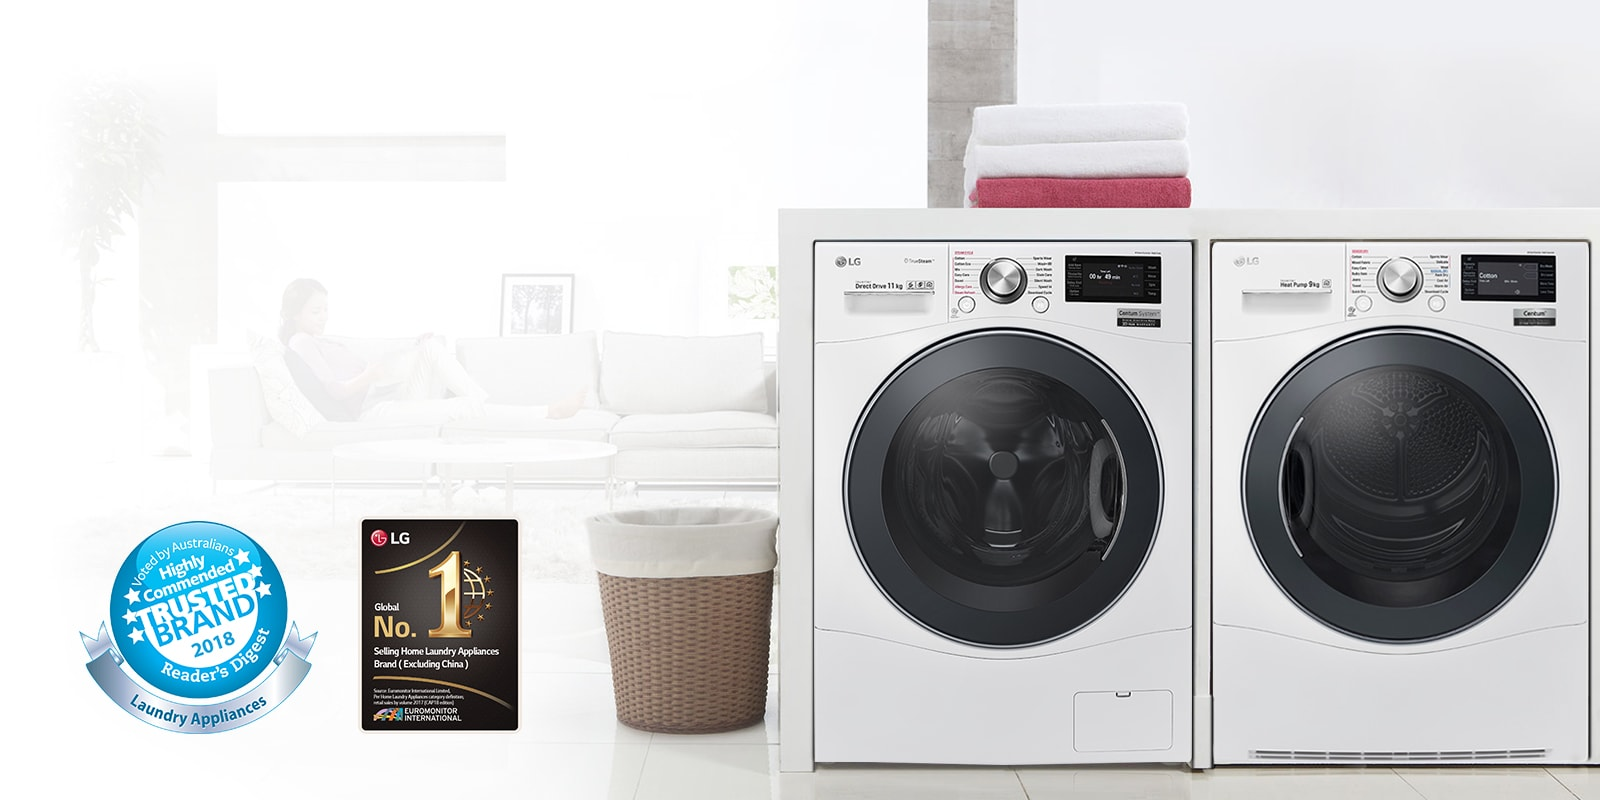 LAUNDRY_BANNER_C1_A0